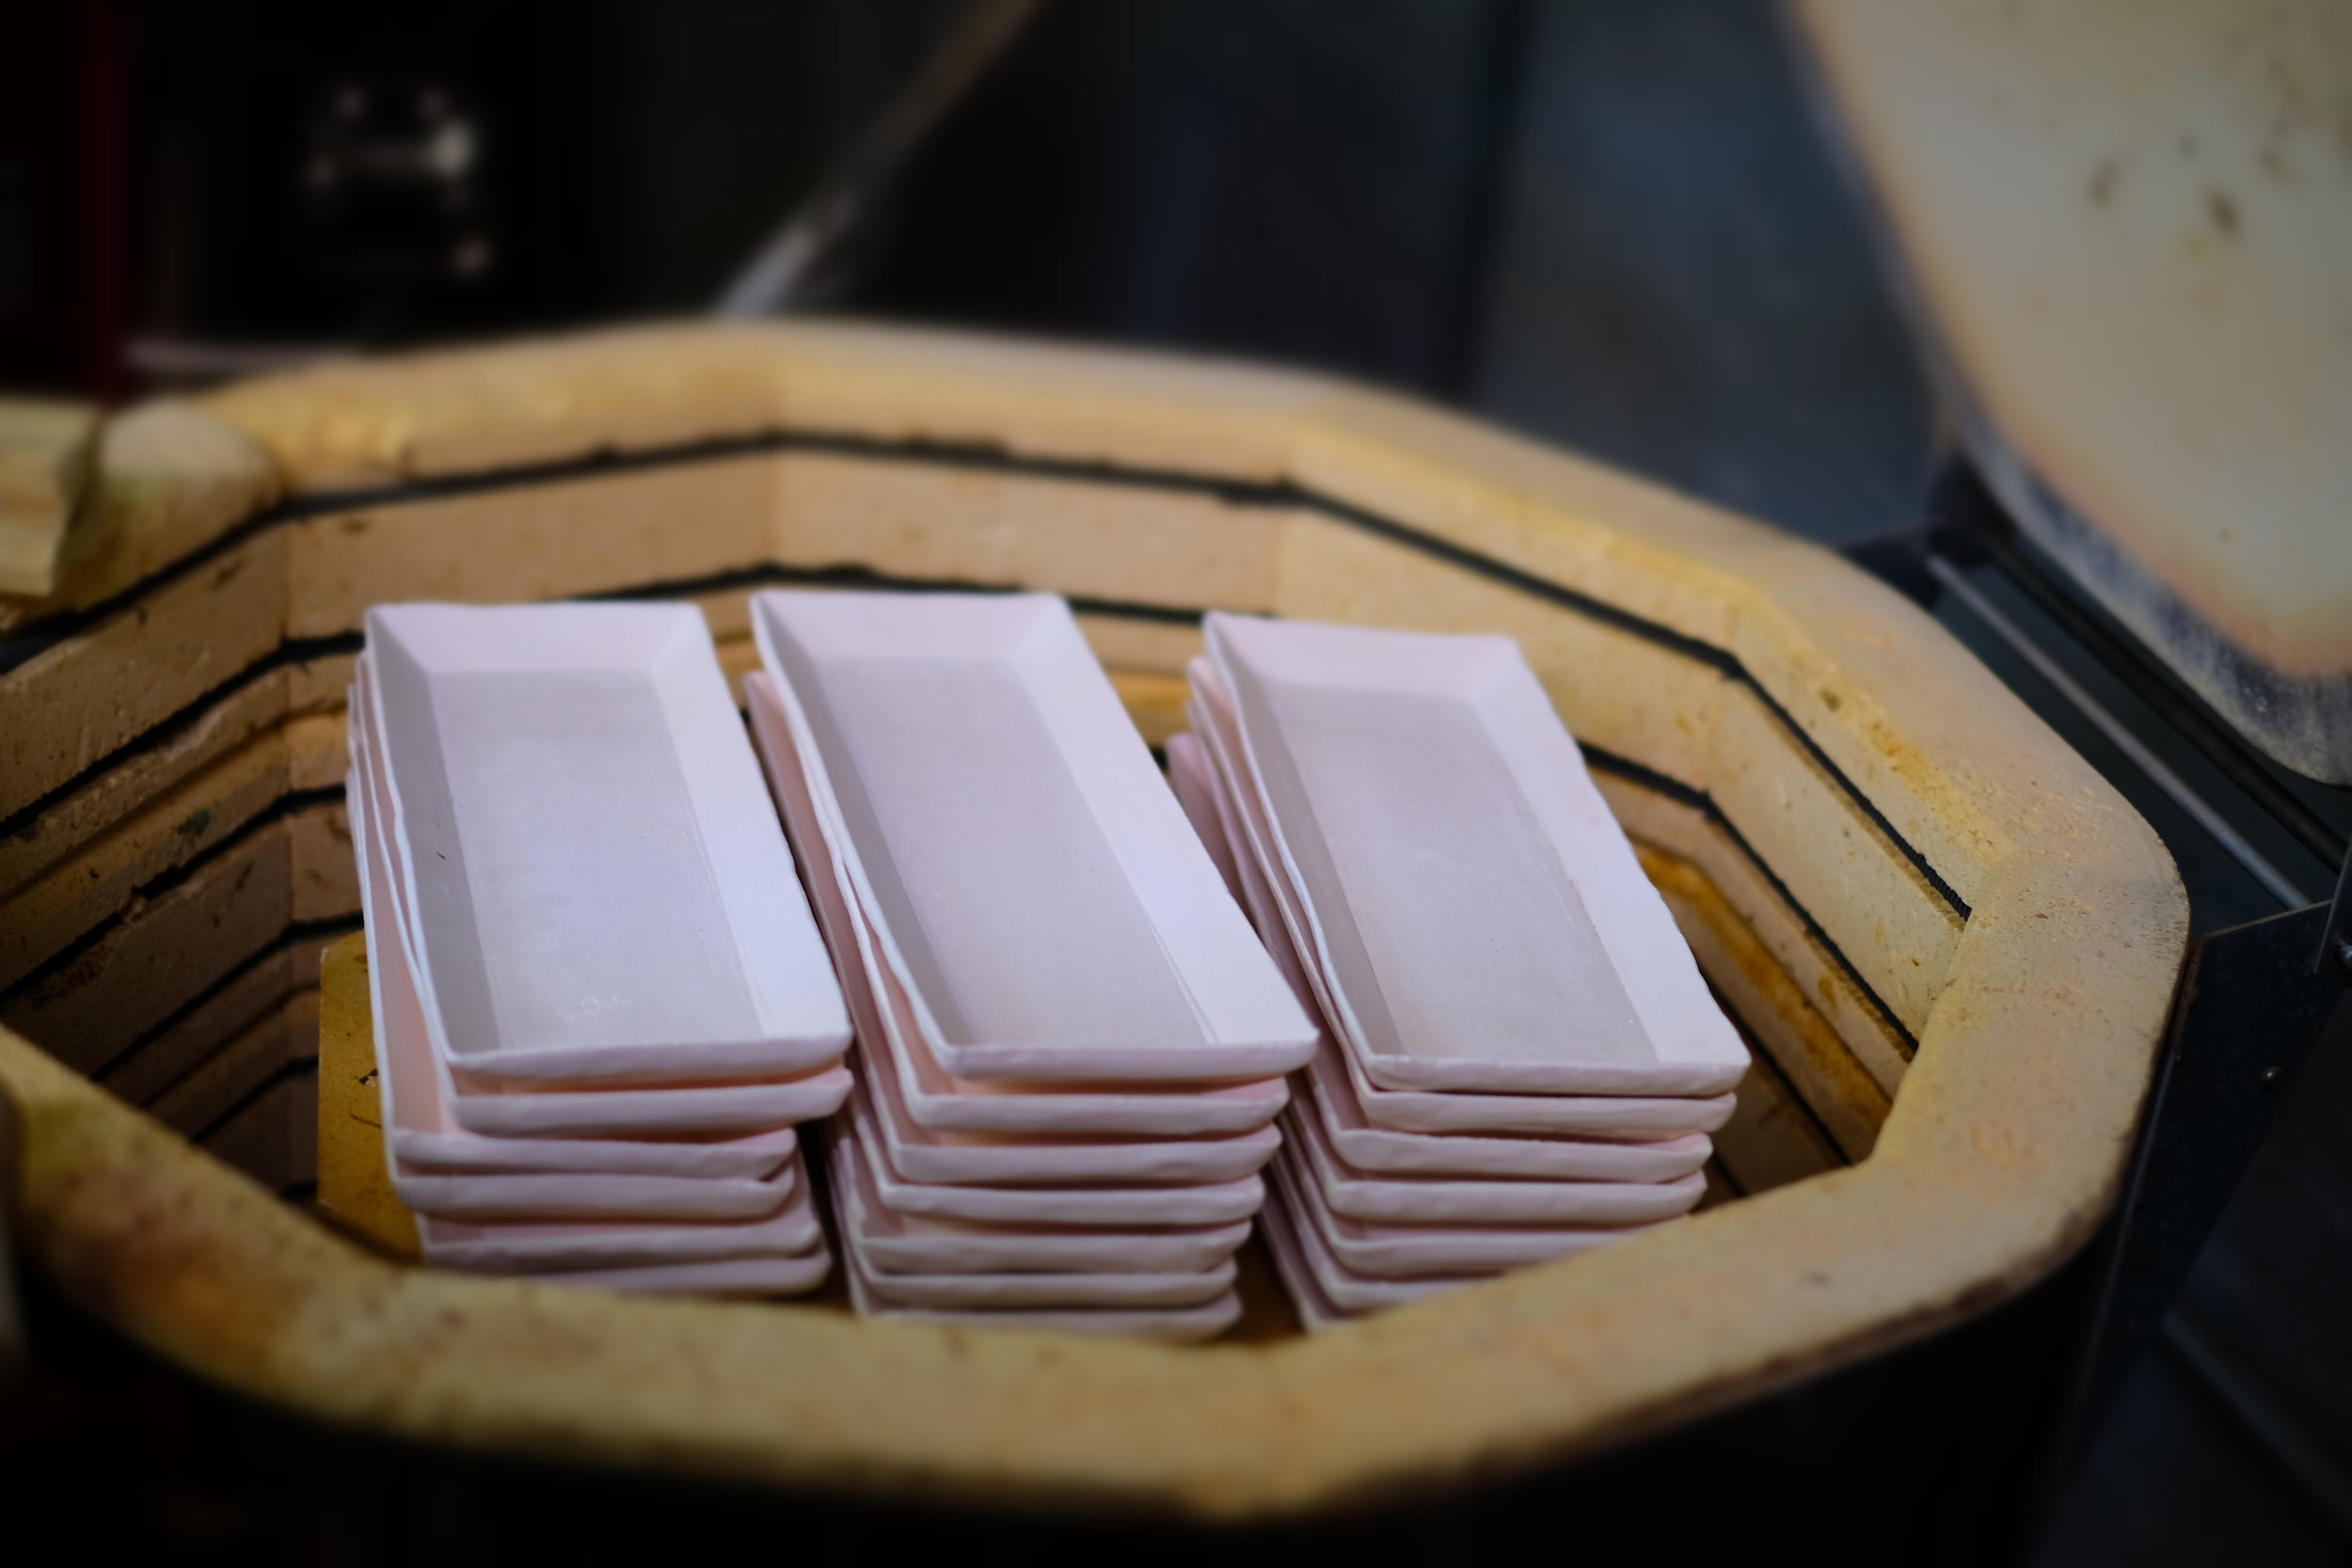 Firing sushi plates for Sushi To Dai For